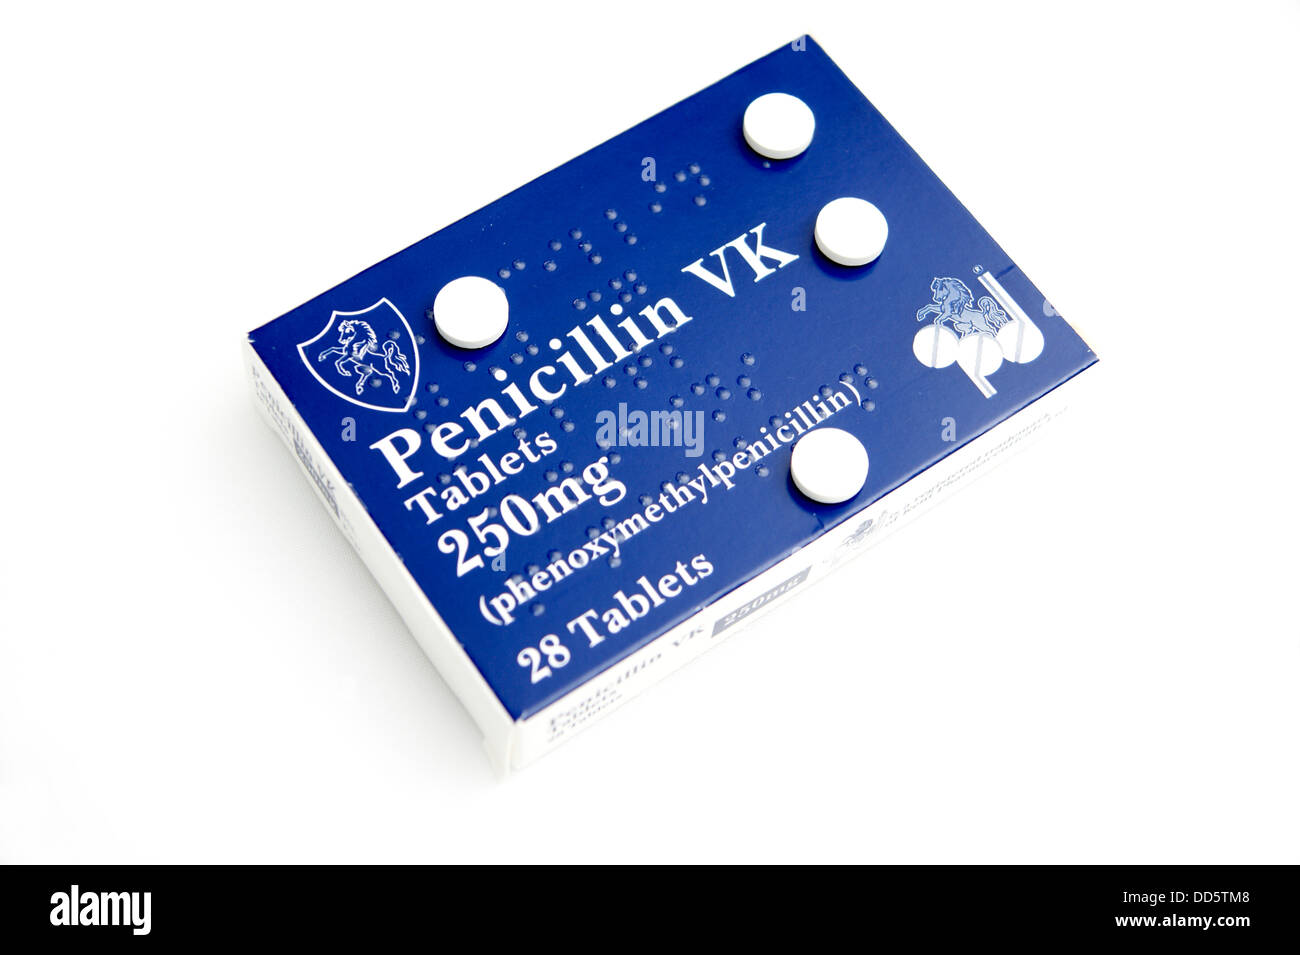 Packs of Penicillin VK (phenoxymethylpenicillin) tablets ...